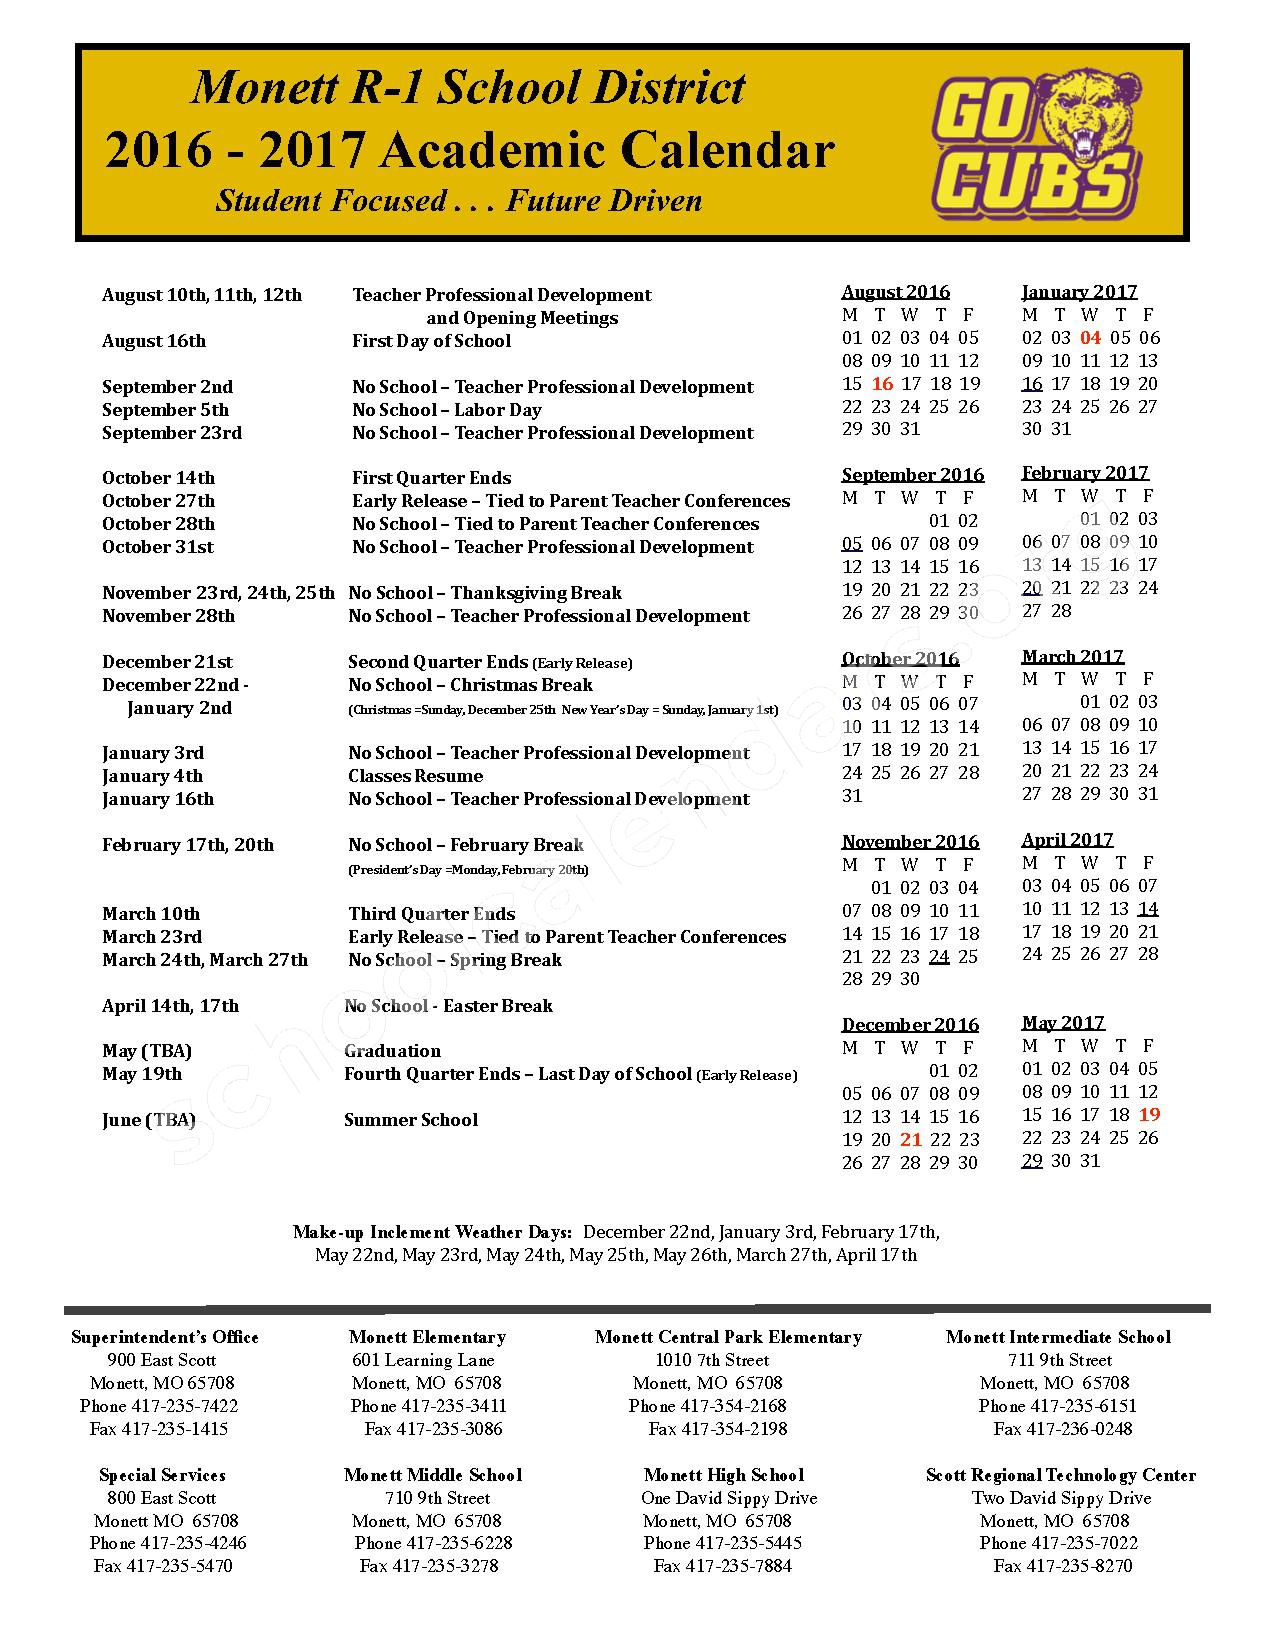 2016 - 2017 Academic Calendar – Monett R-I School District – page 1